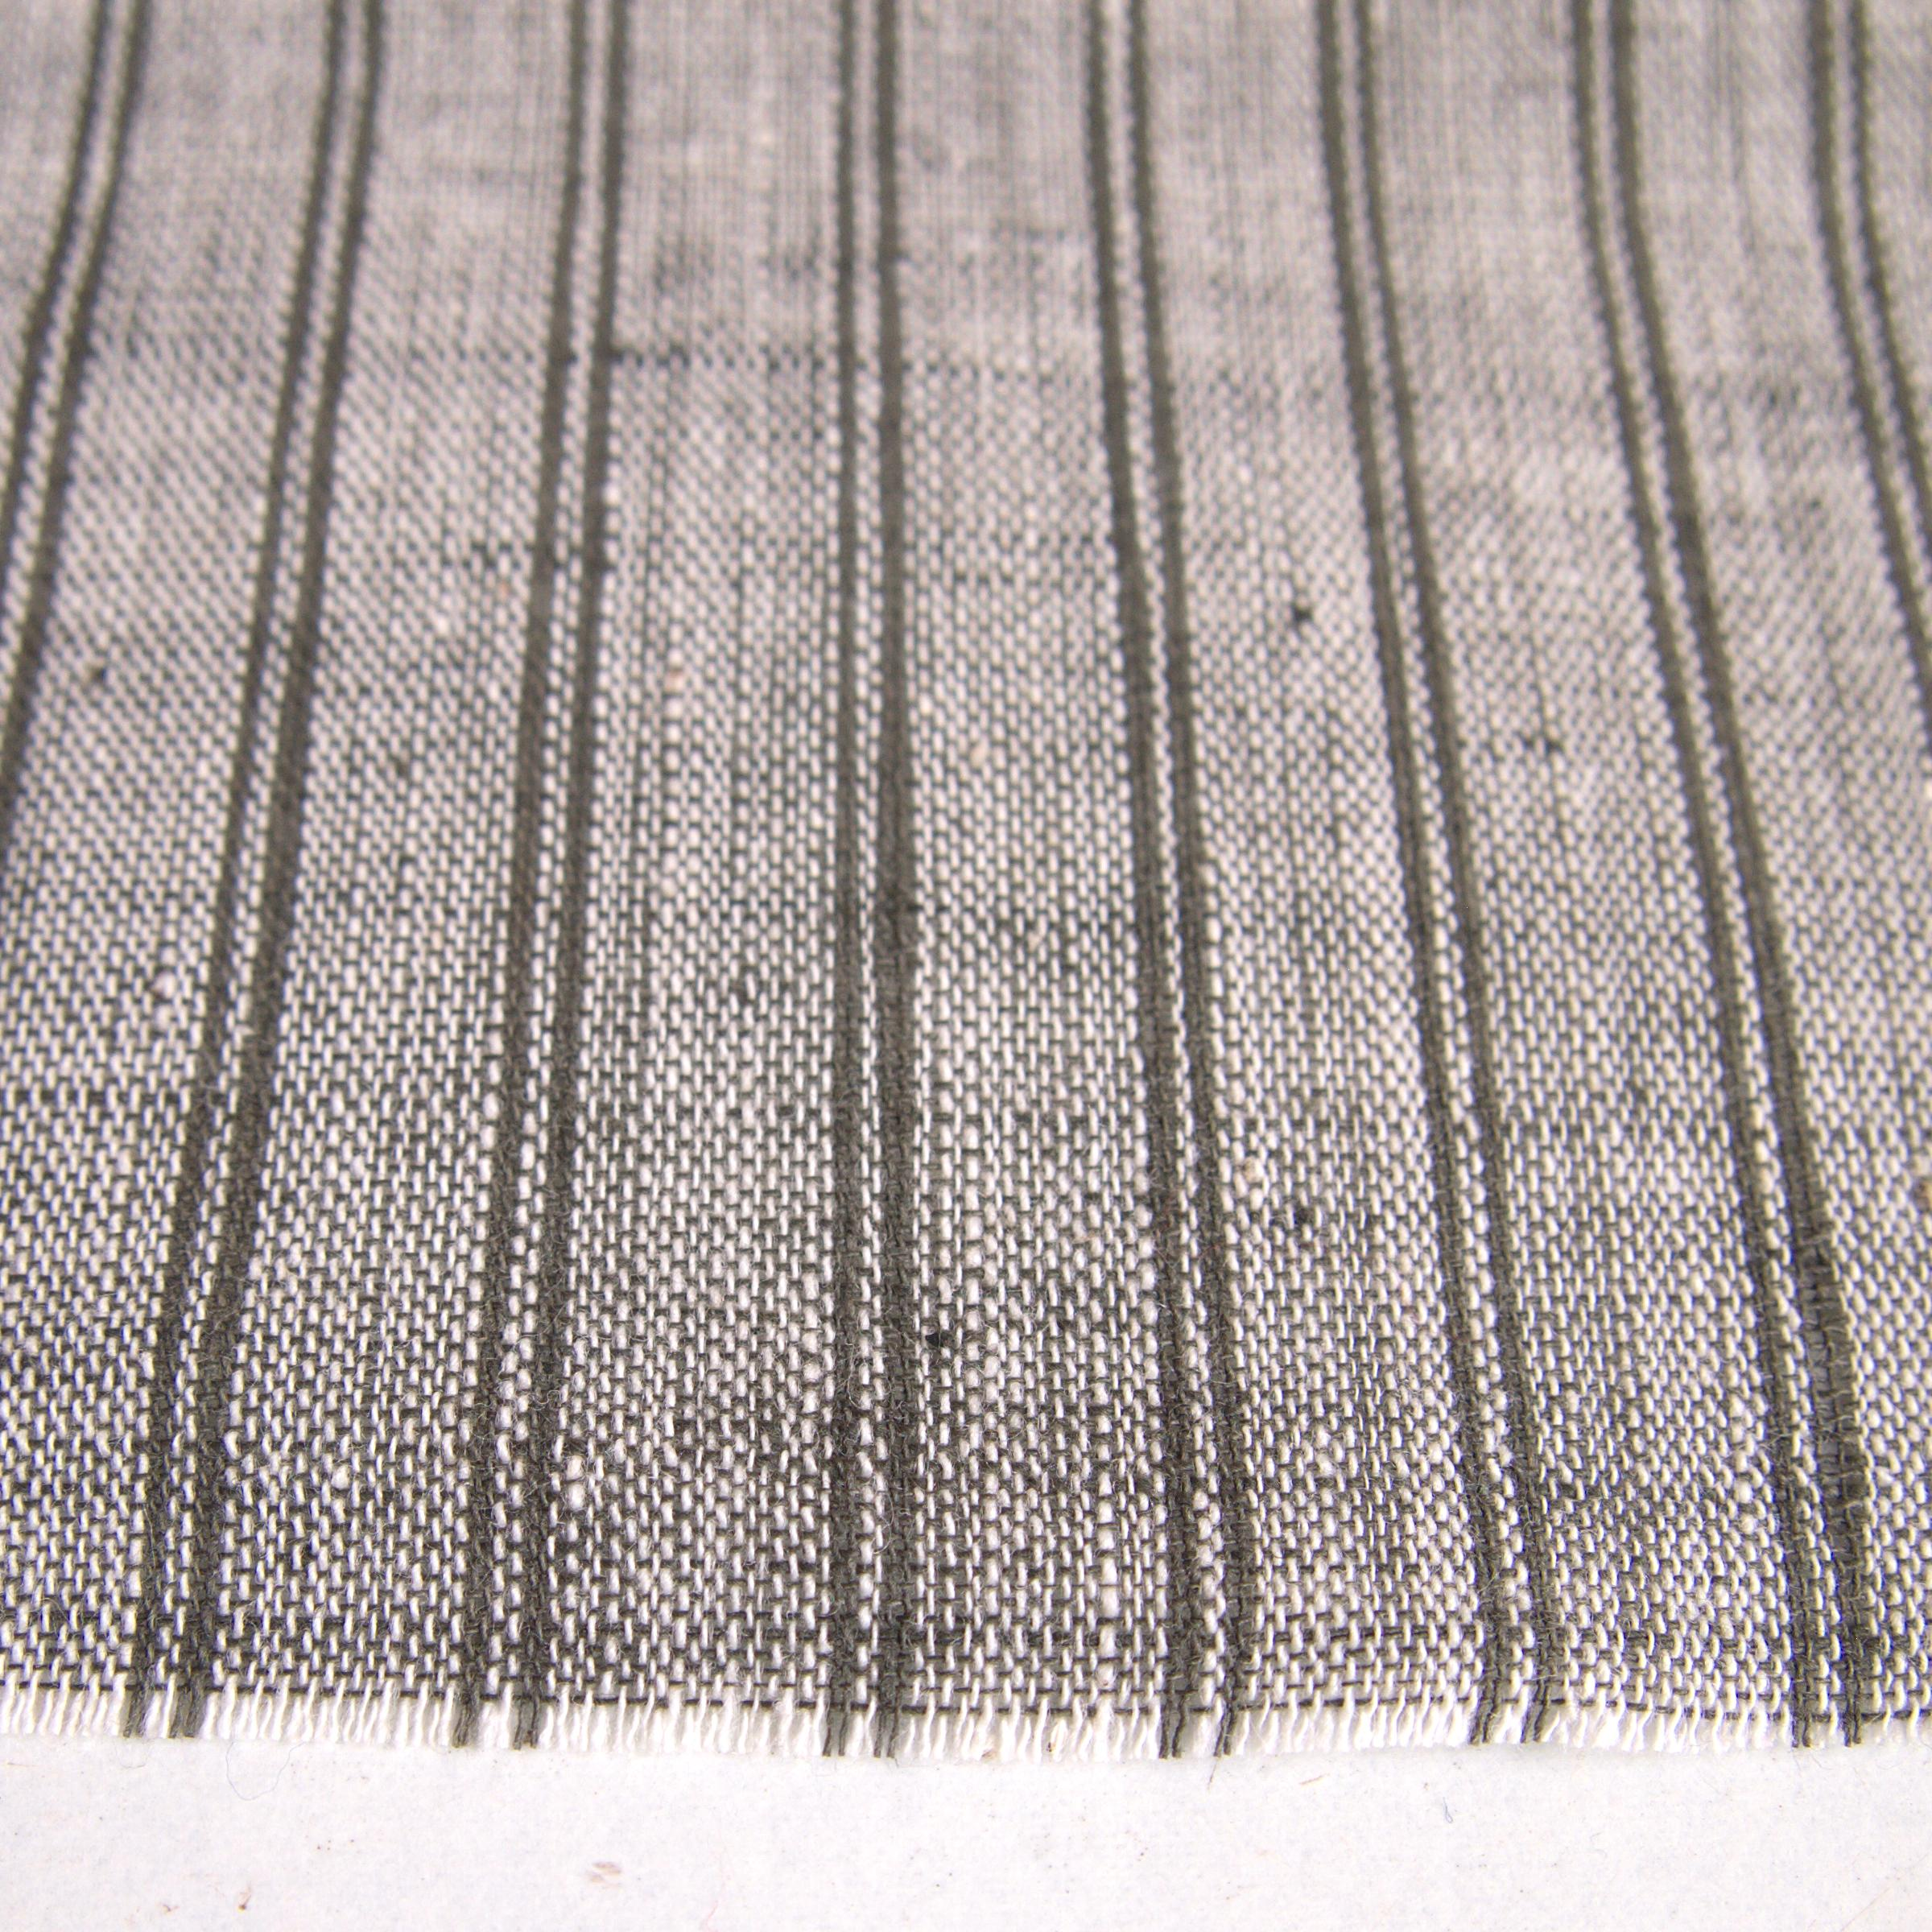 100% Handloom Woven Cotton - Stripes - White Warp, Olive Green Warp & Weft - Close Up